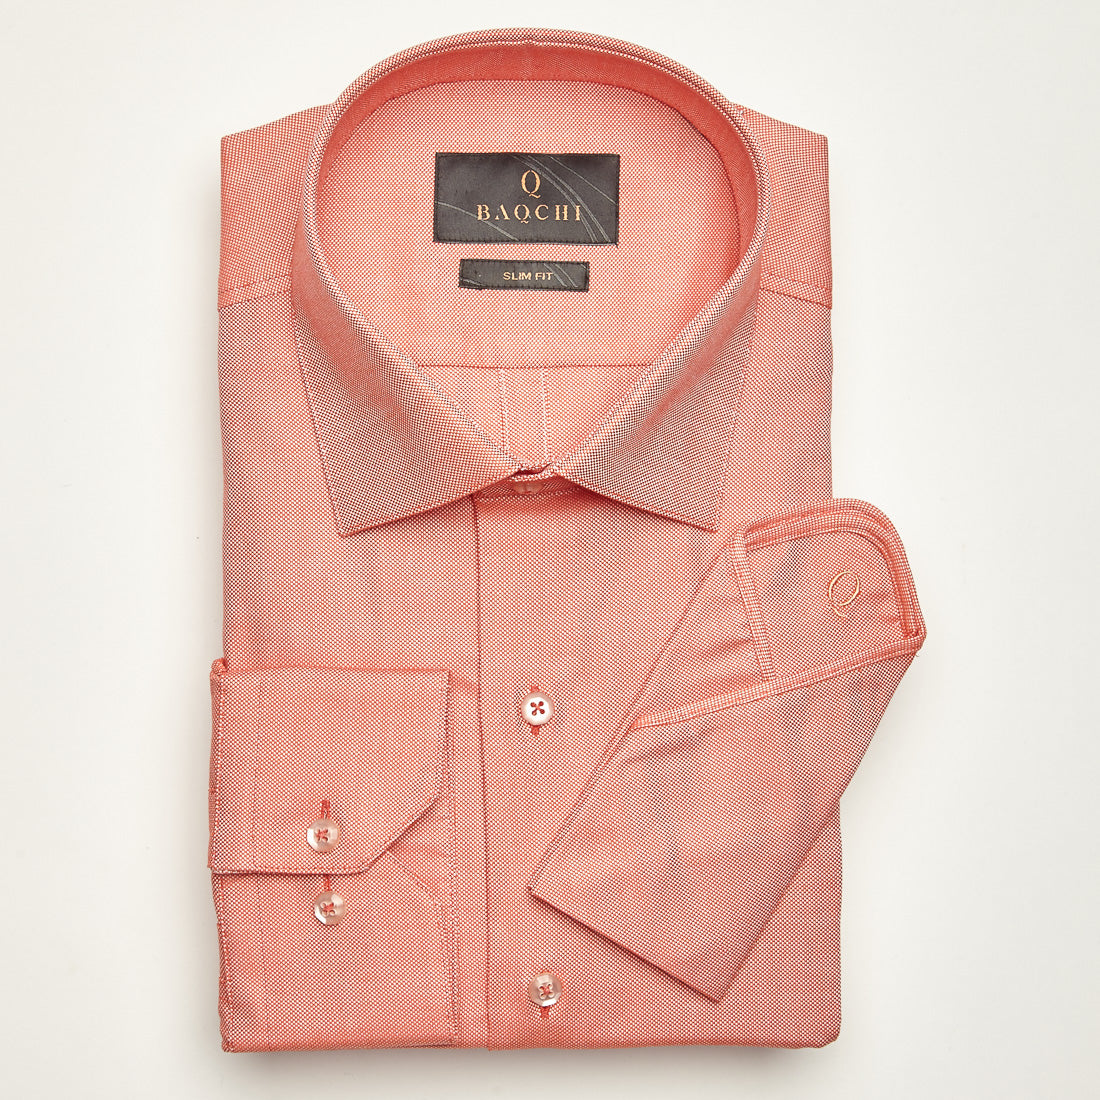 Slim Fit Long Sleeve Coral Oxford Cotton Shirt Baqchi